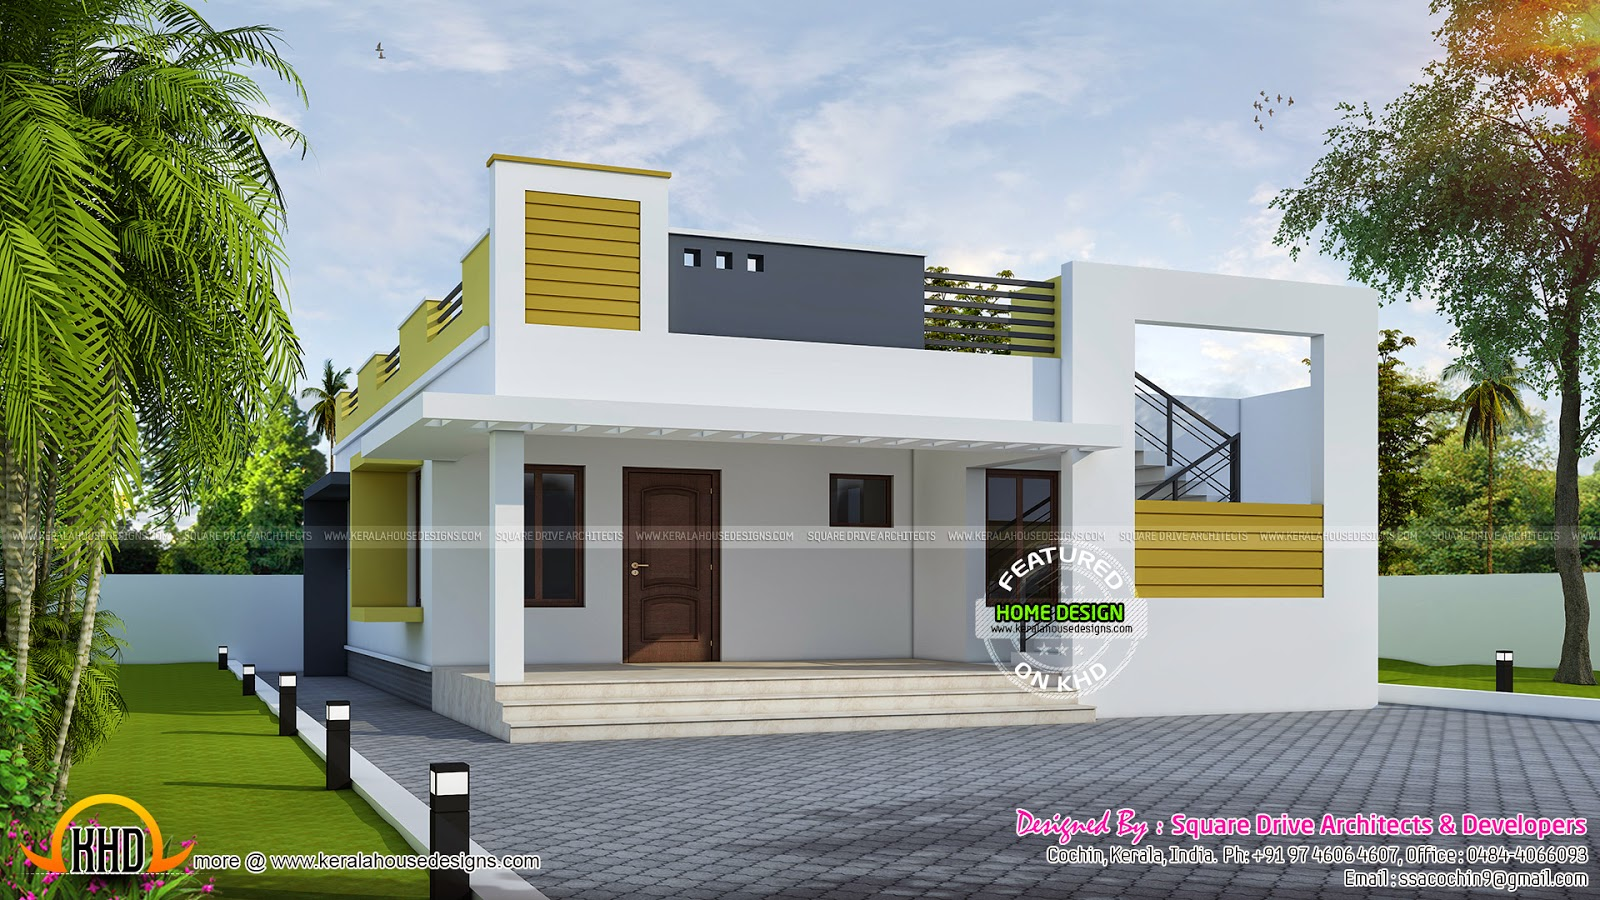 Simple contemporary home - Kerala home design and floor plans